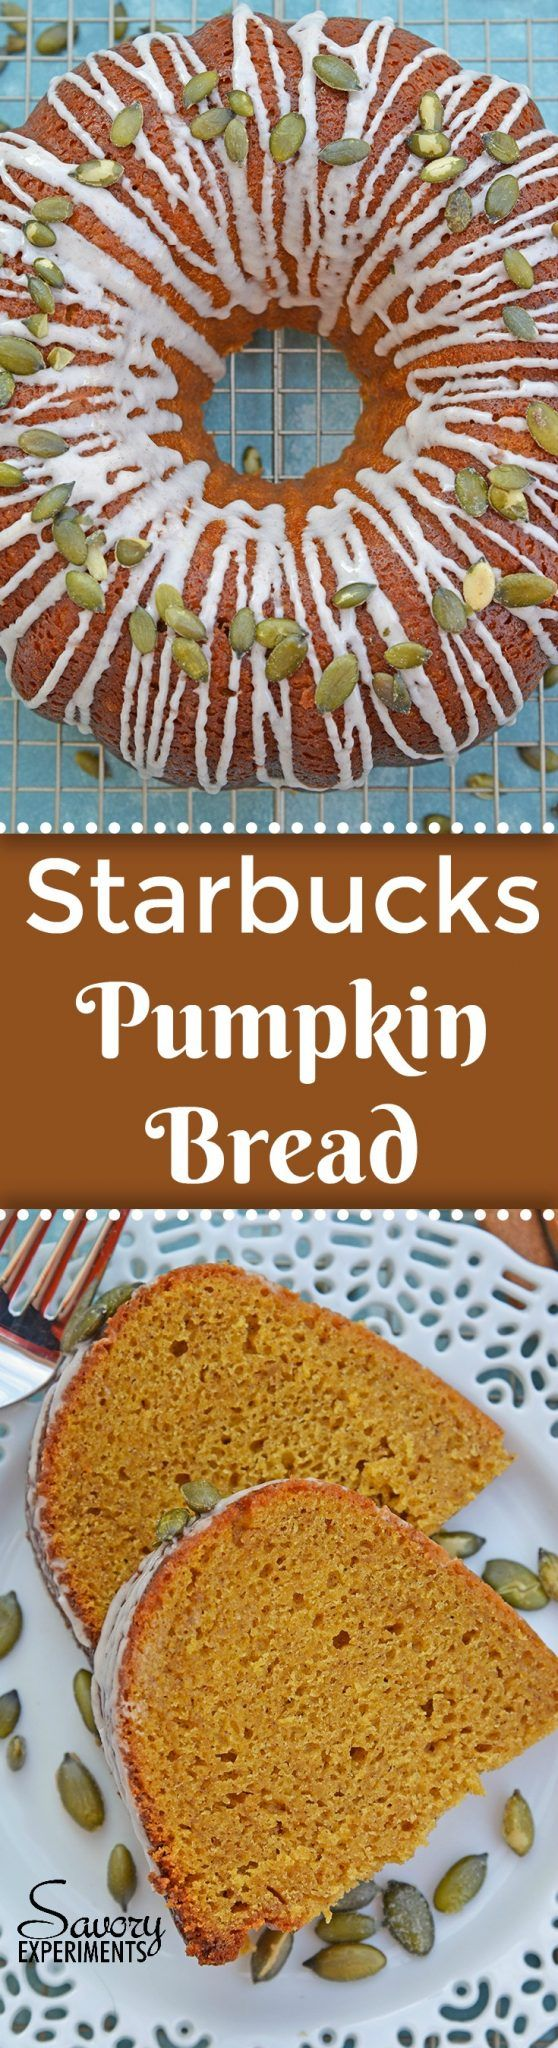 Copycat Starbucks Pumpkin Bread is a moist and flavorful pumpkin pound cake perfect for pairing with a pumpkin spice coffee! #pumpkinbread #pumpkinpoundcake www.savoryexperiments.com via @savorycooking